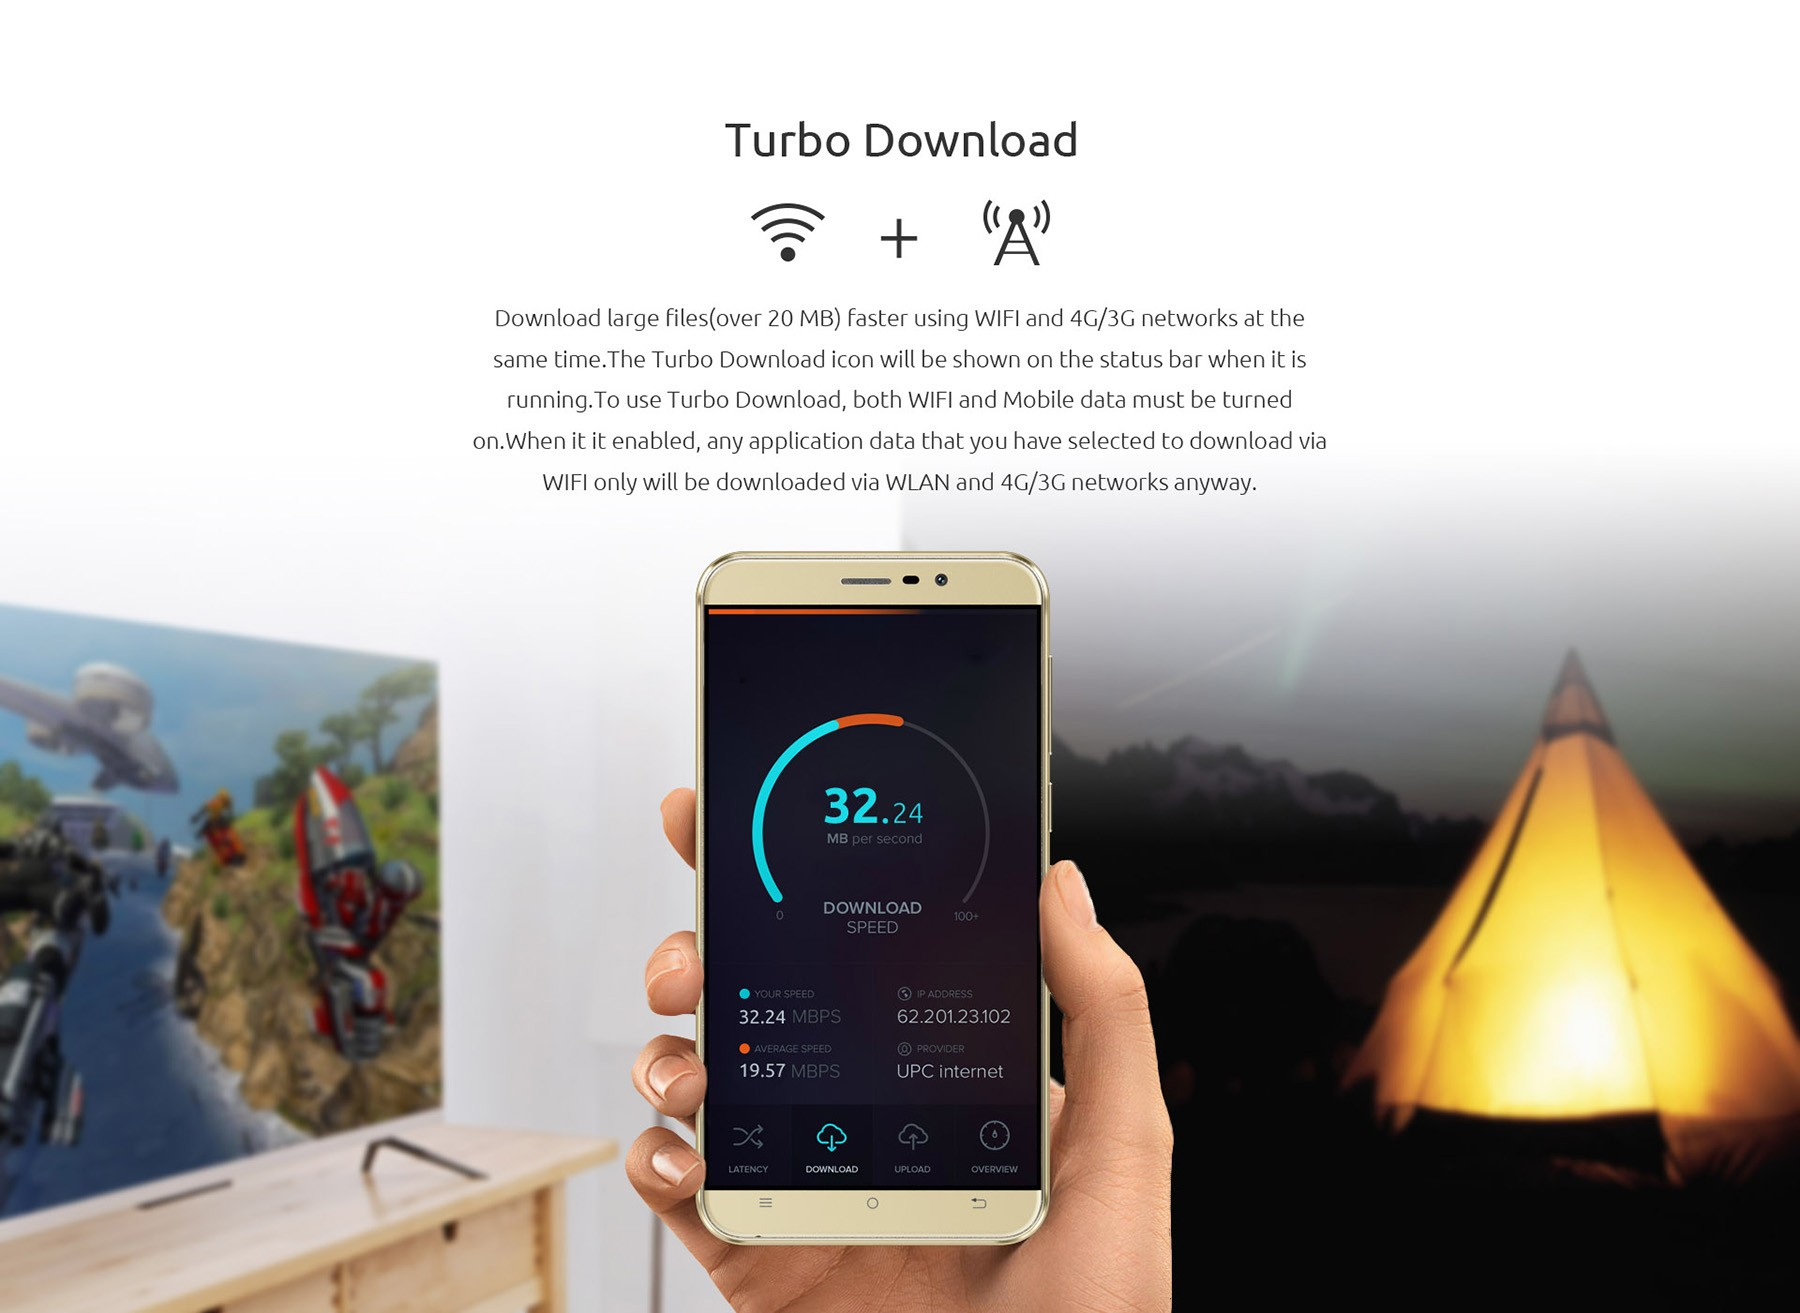 CUBOT Dinosaur 5.5 inch 4G Phablet Android 6.0 MTK6735 64bit Quad Core 1.3GHz 3GB RAM 16GB ROM 13.0MP Main Camera HD Screen OTG HotKnot